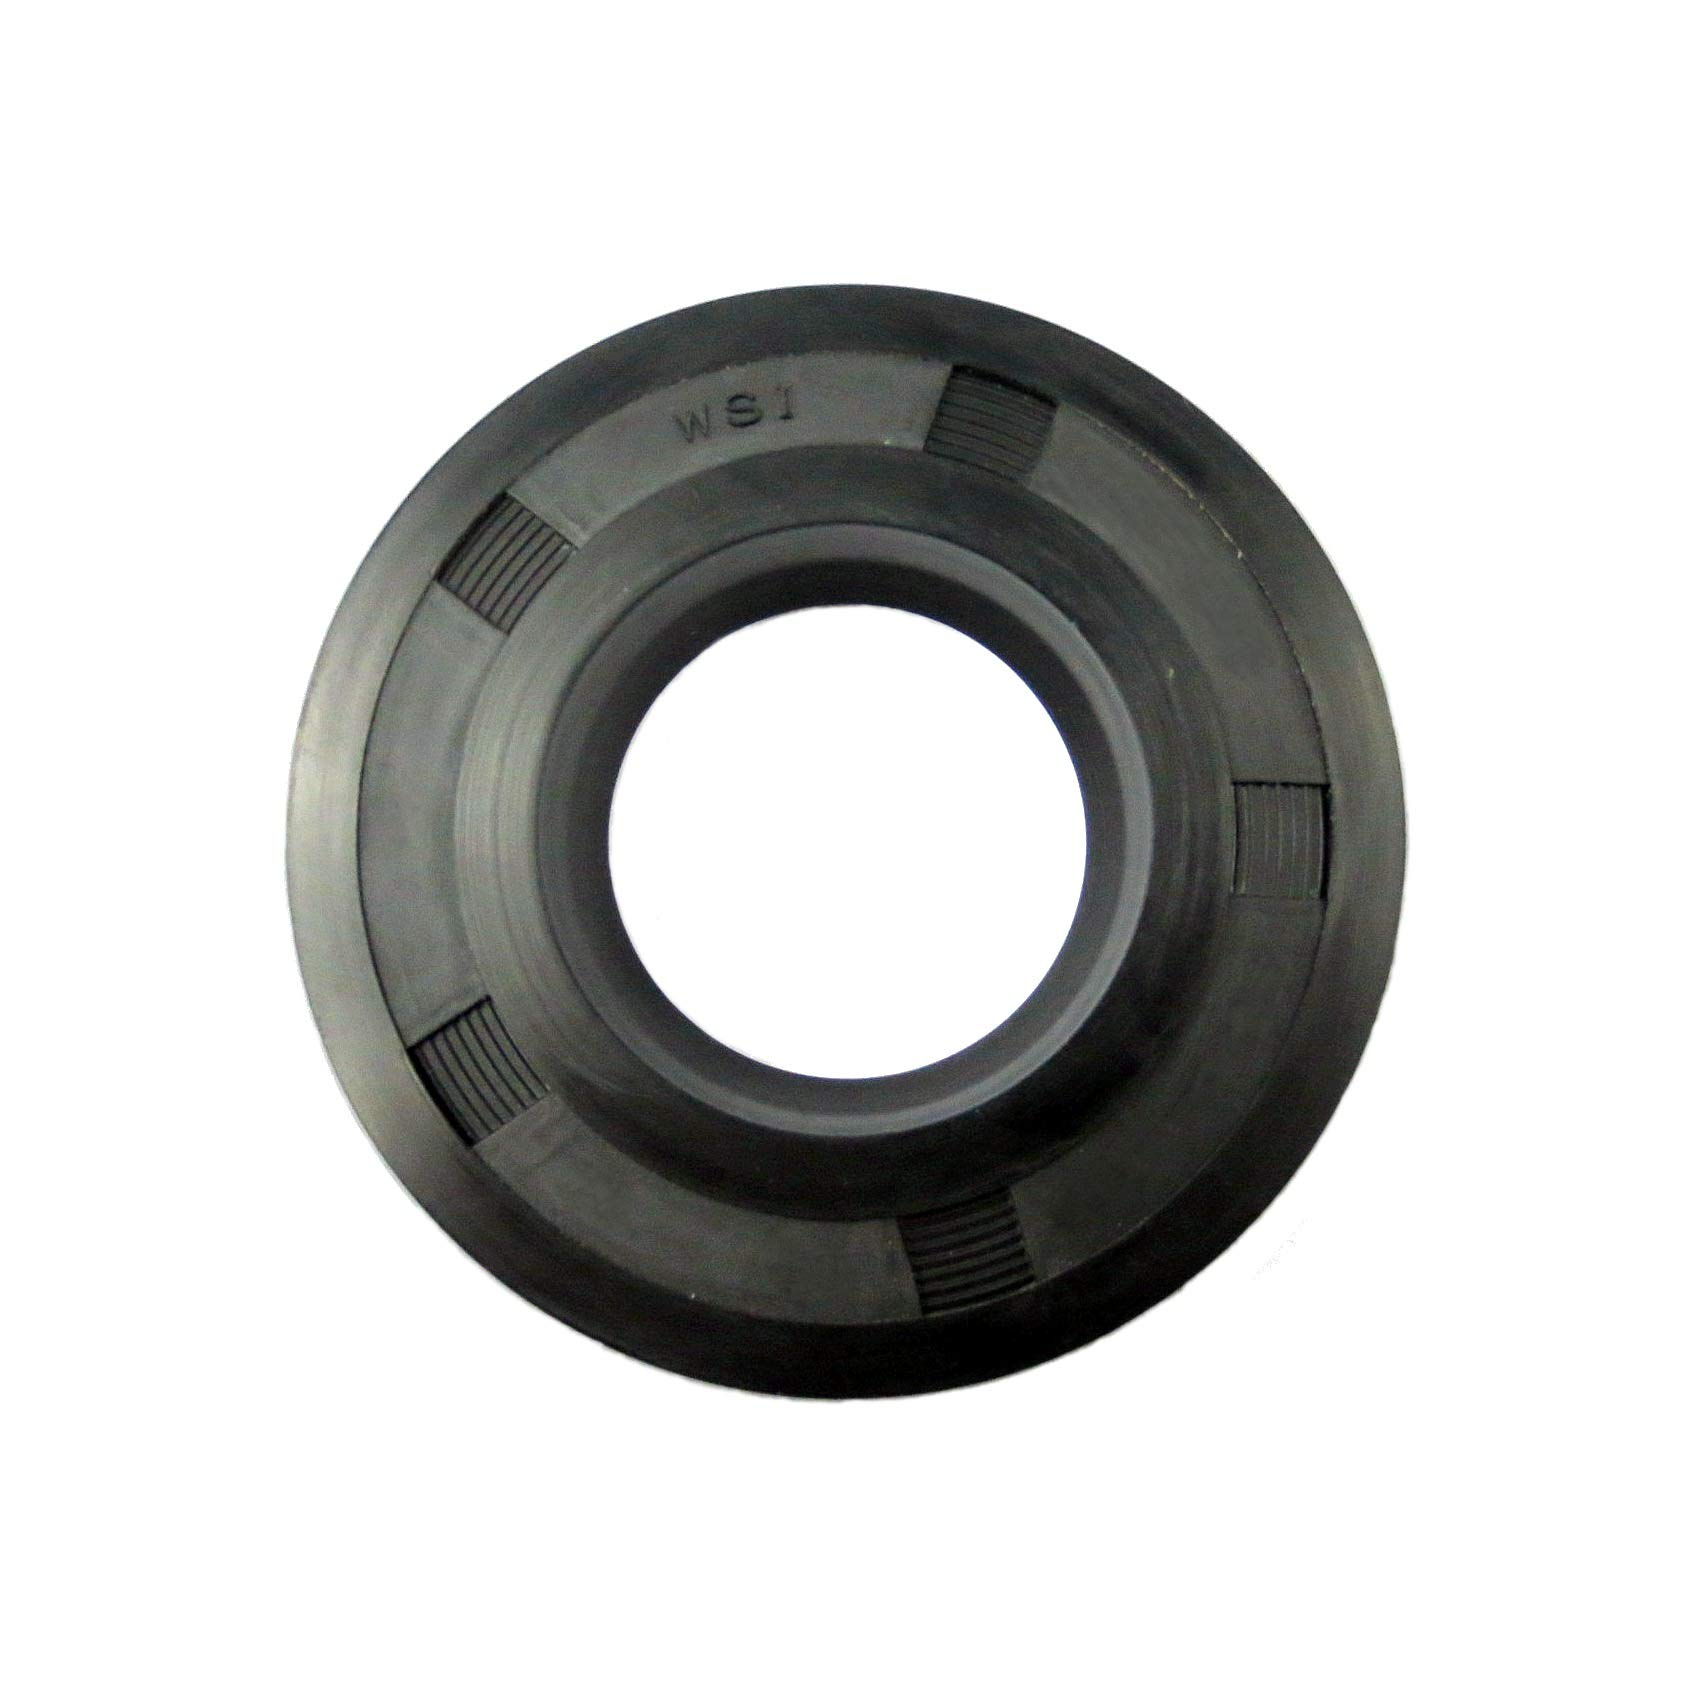 WSI 30x47x5mm R21/SC Single Lip Nitrile Rotary Shaft Oil Seal with Garter Spring, Great Wear Resistance And Sealing Effect for General Machinery, Transport, Motorcycles, Agriculture, Pumps, Mining